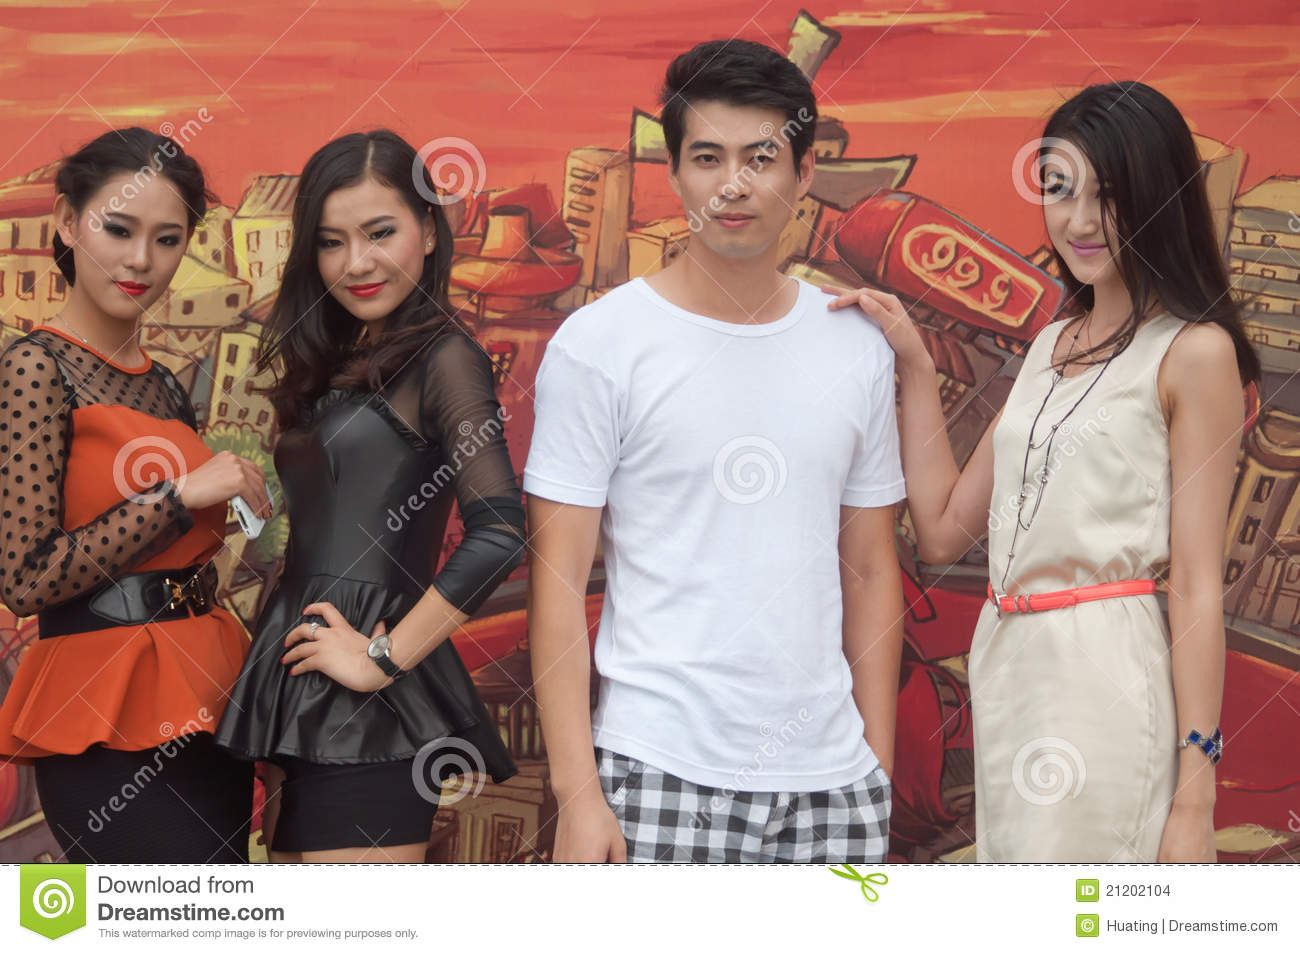 Chinese young models